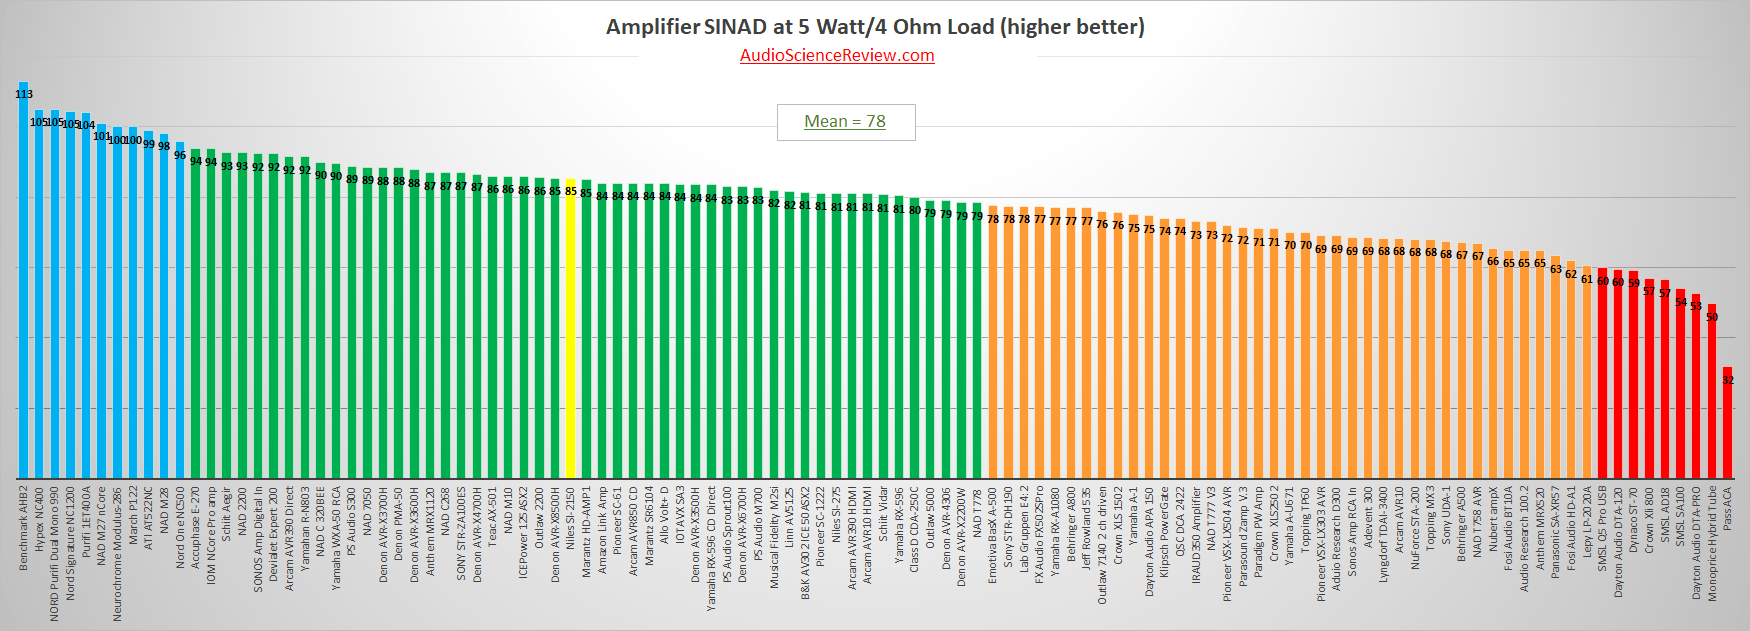 Best stereo amplifie review 2020.png